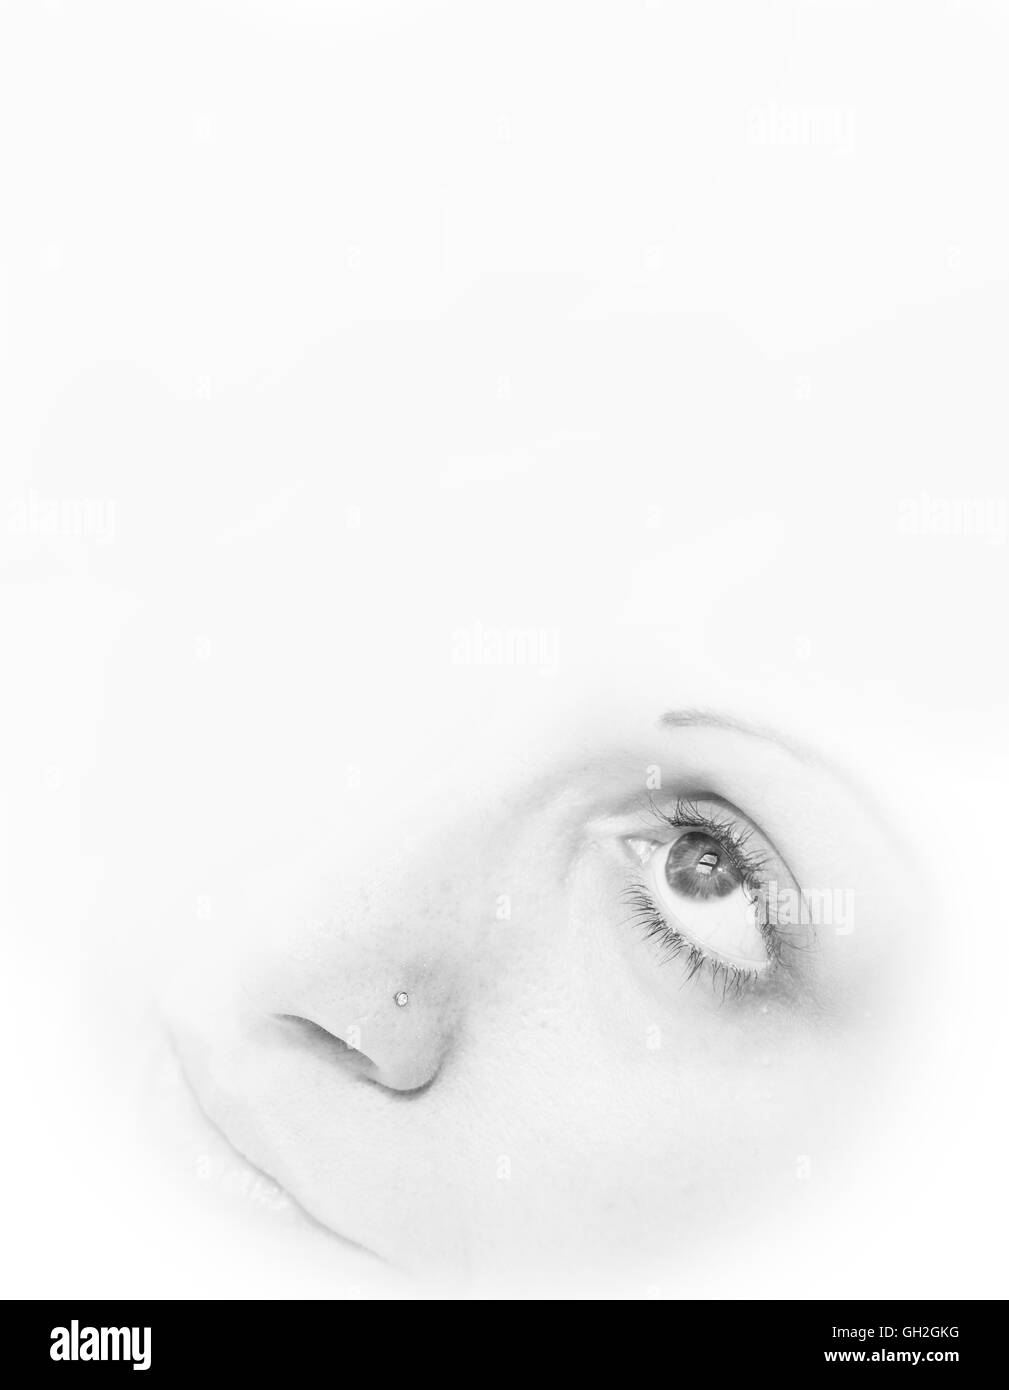 A womans face looking up with eyes open - Stock Image